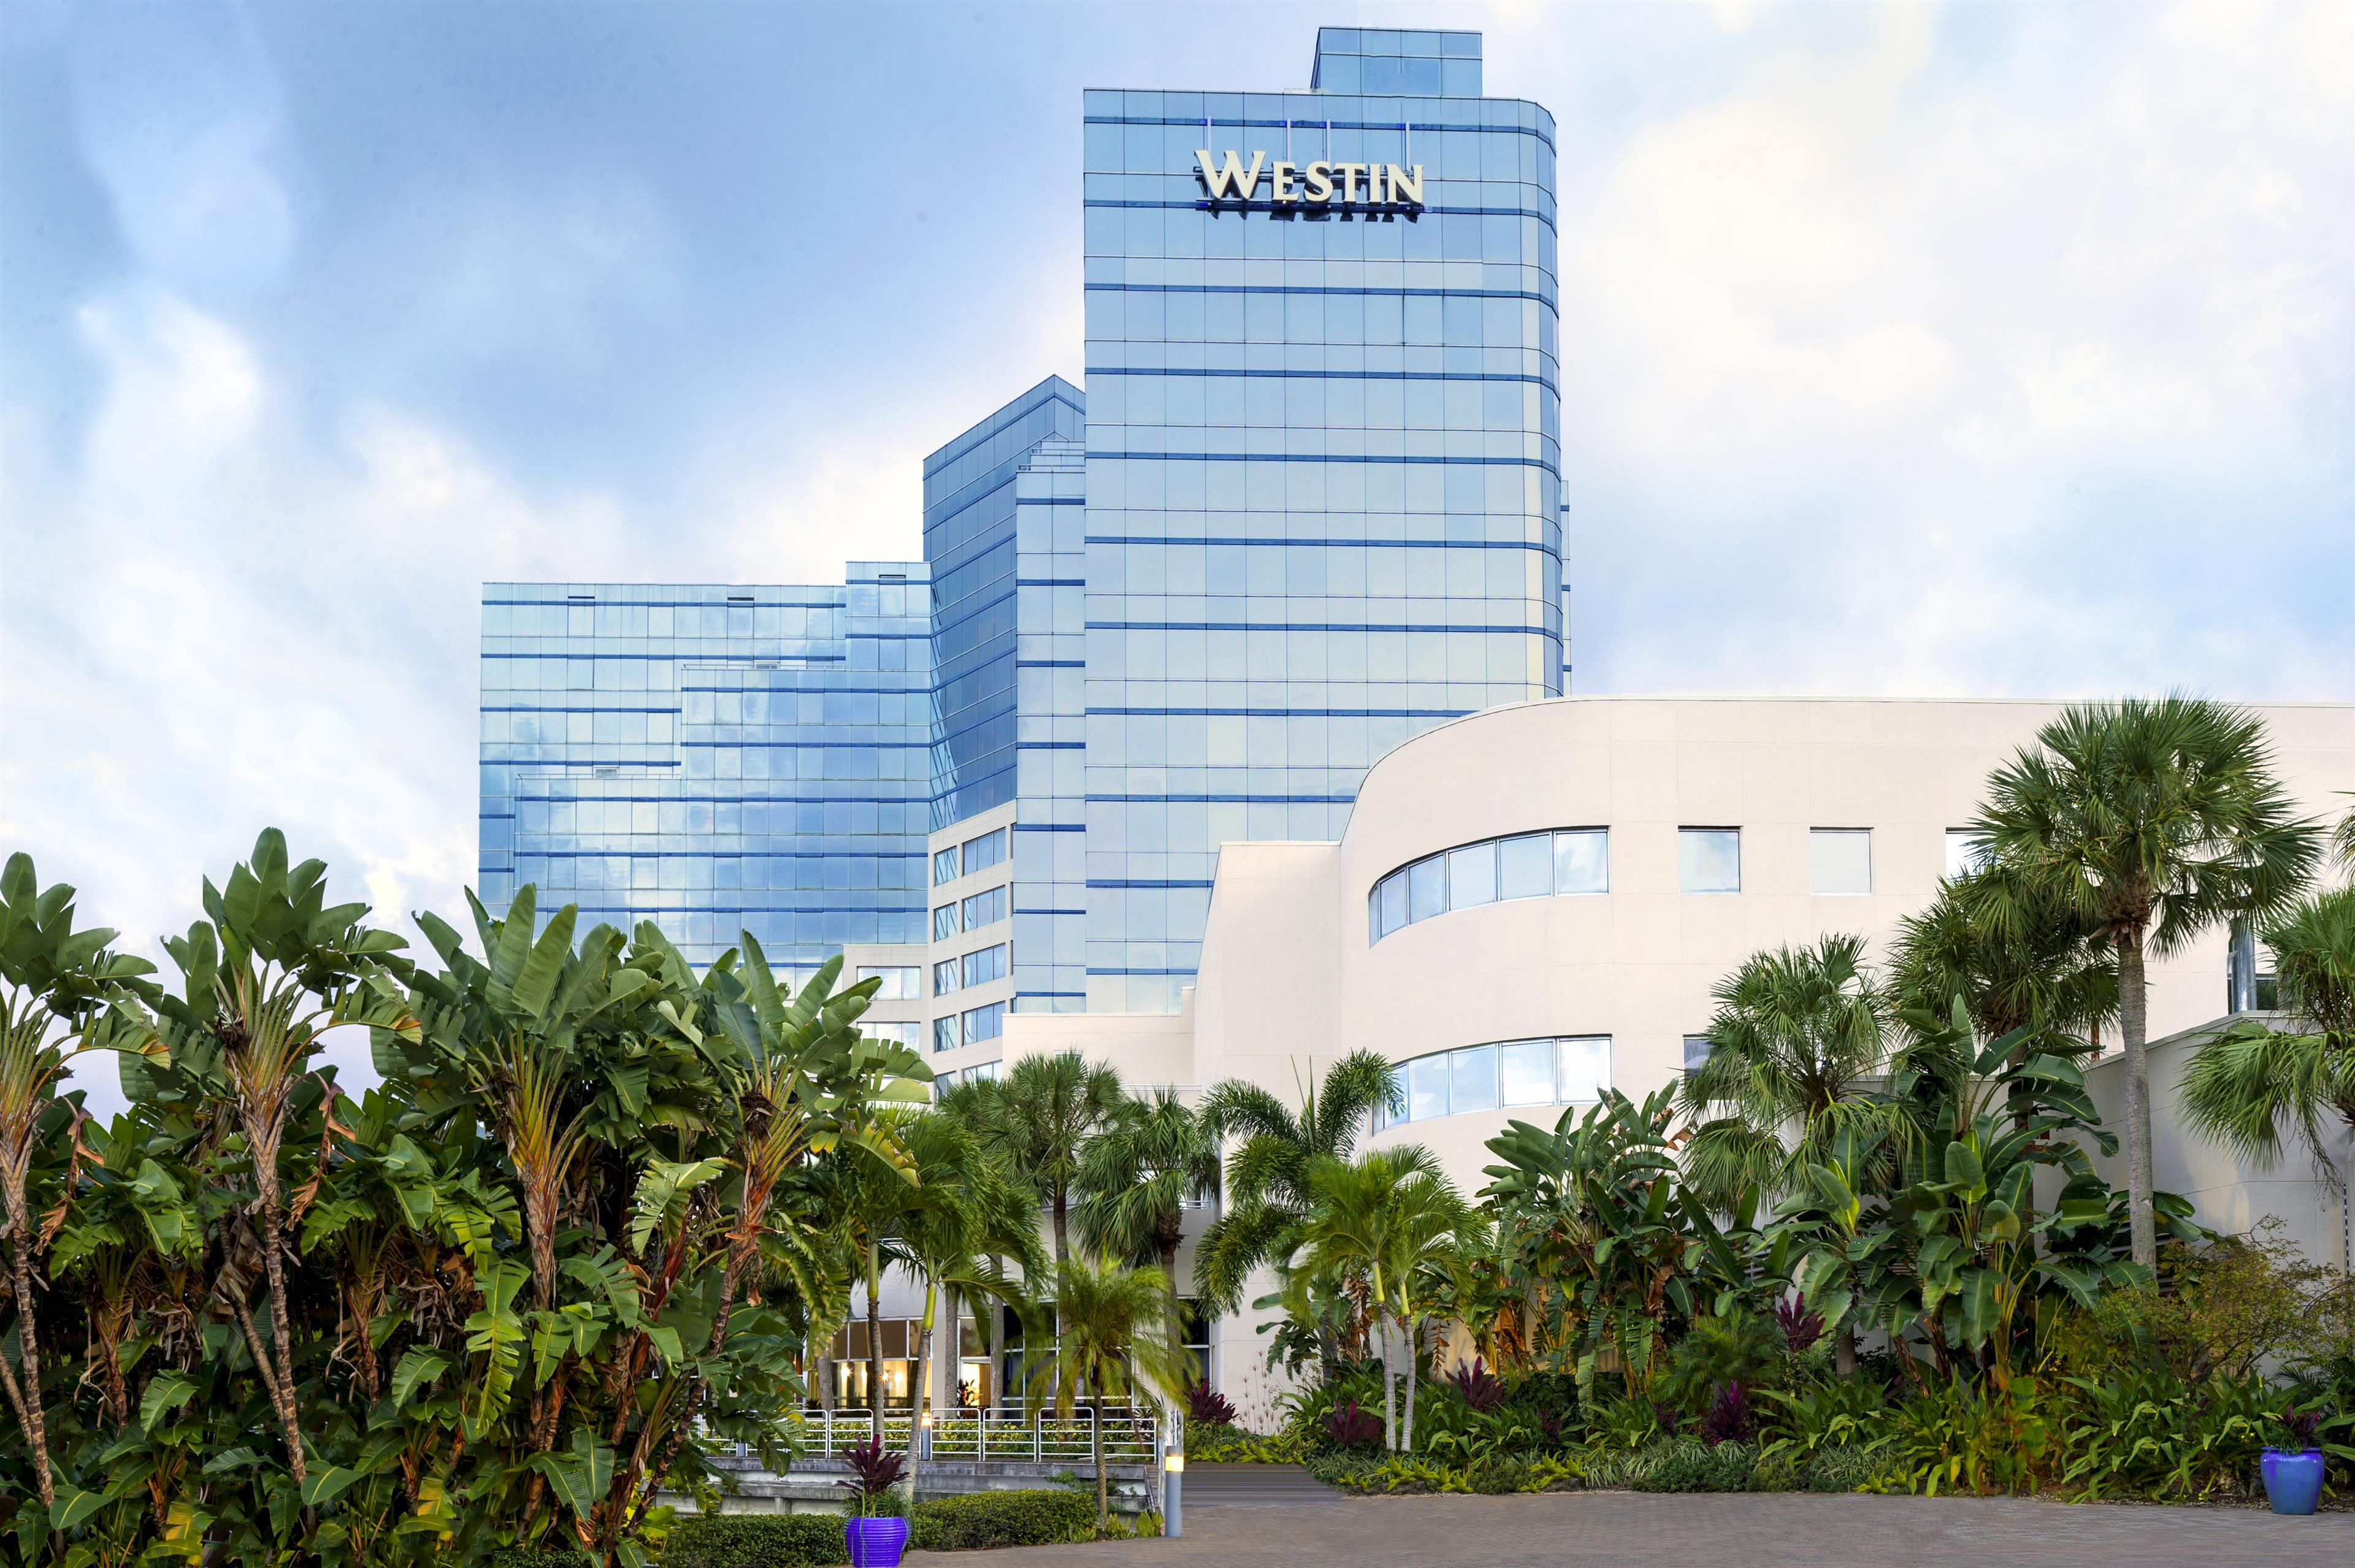 The Westin Fort Lauderdale image 15